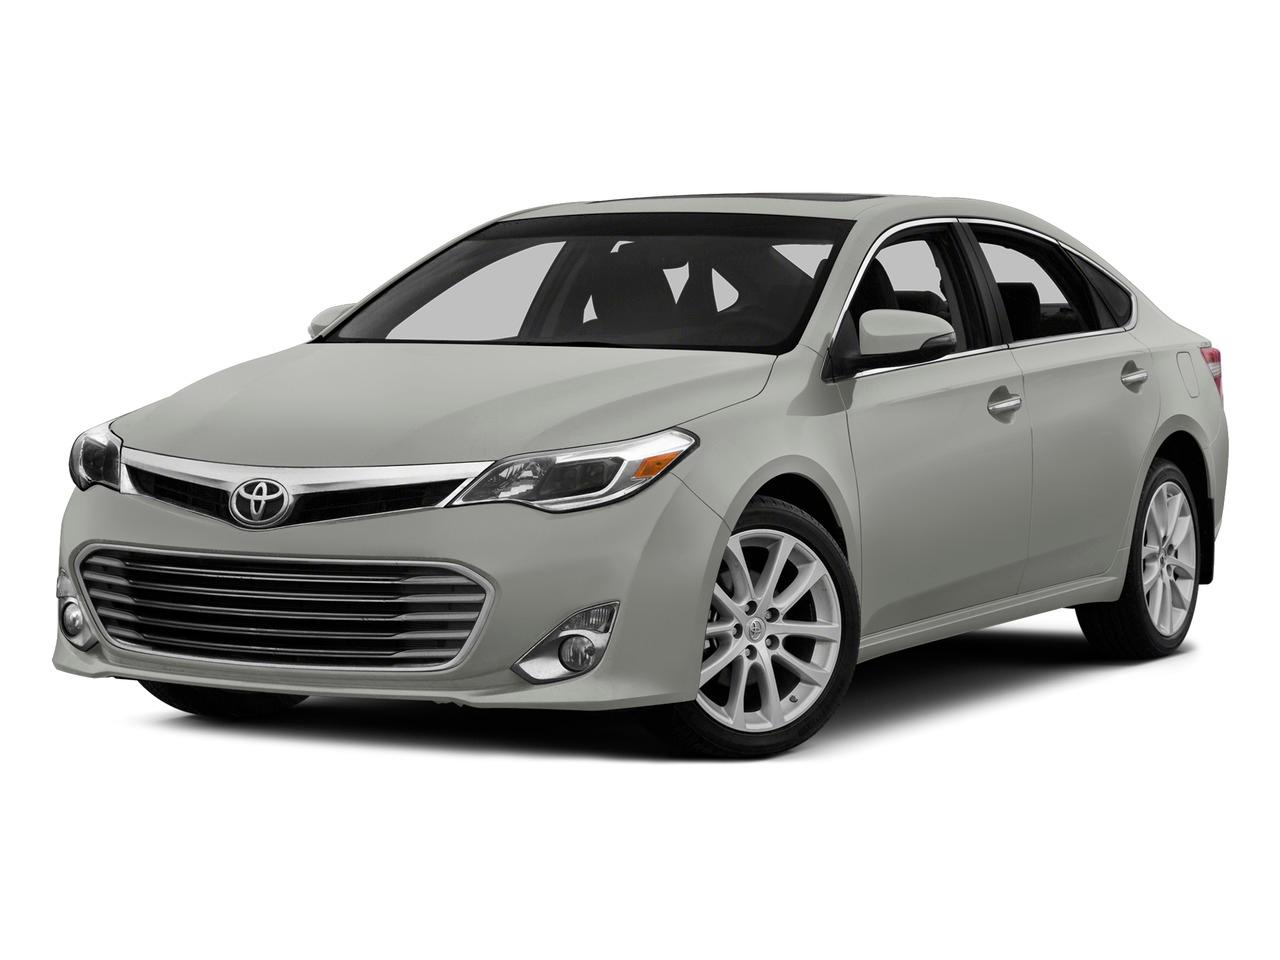 2015 Toyota Avalon Vehicle Photo in New Castle, DE 19720